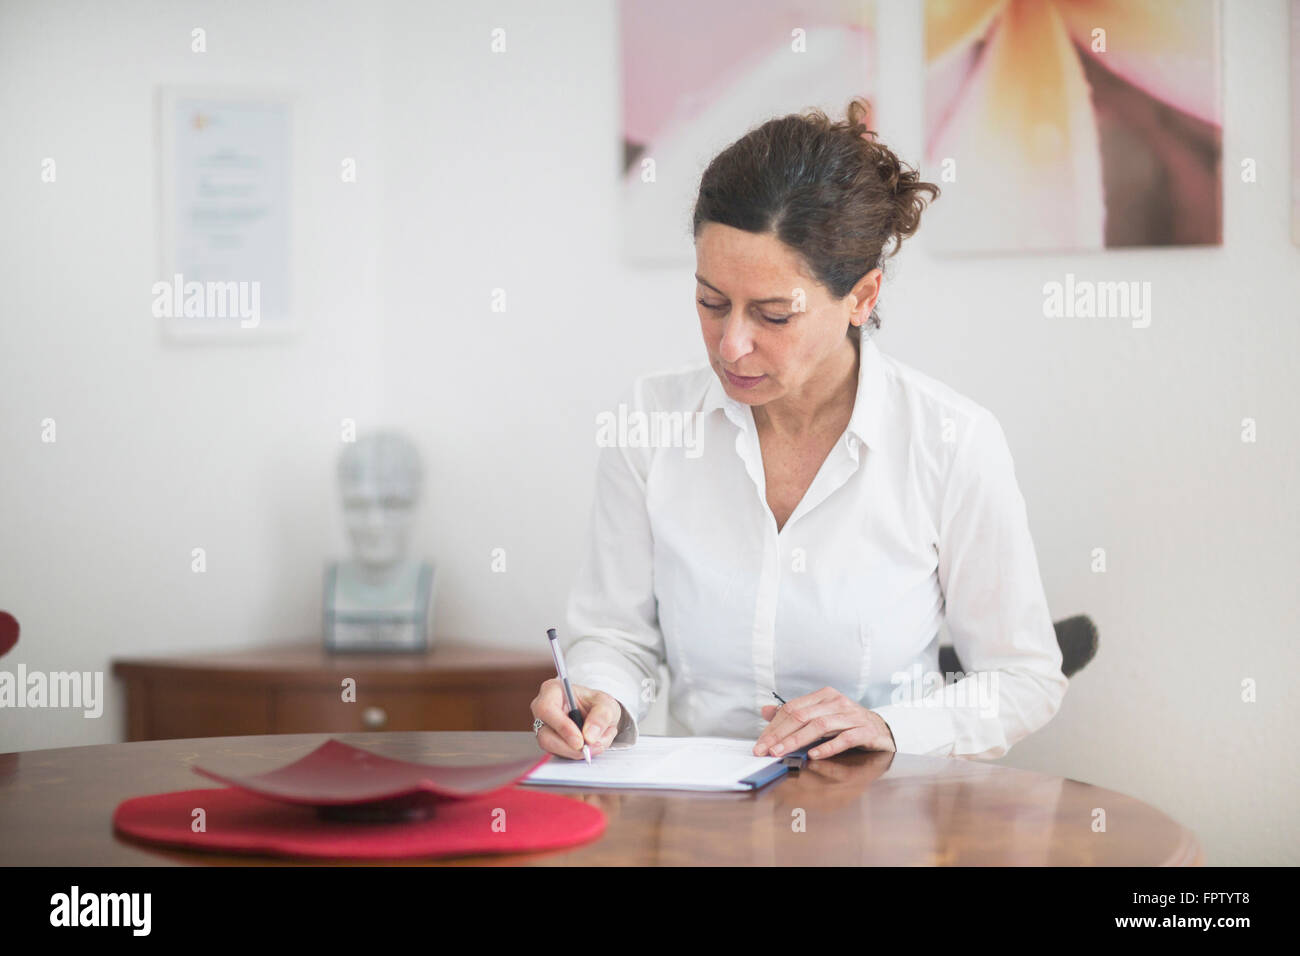 Female doctor writing prescription in hospital, Freiburg Im Breisgau, Baden-Württemberg, Germany - Stock Image